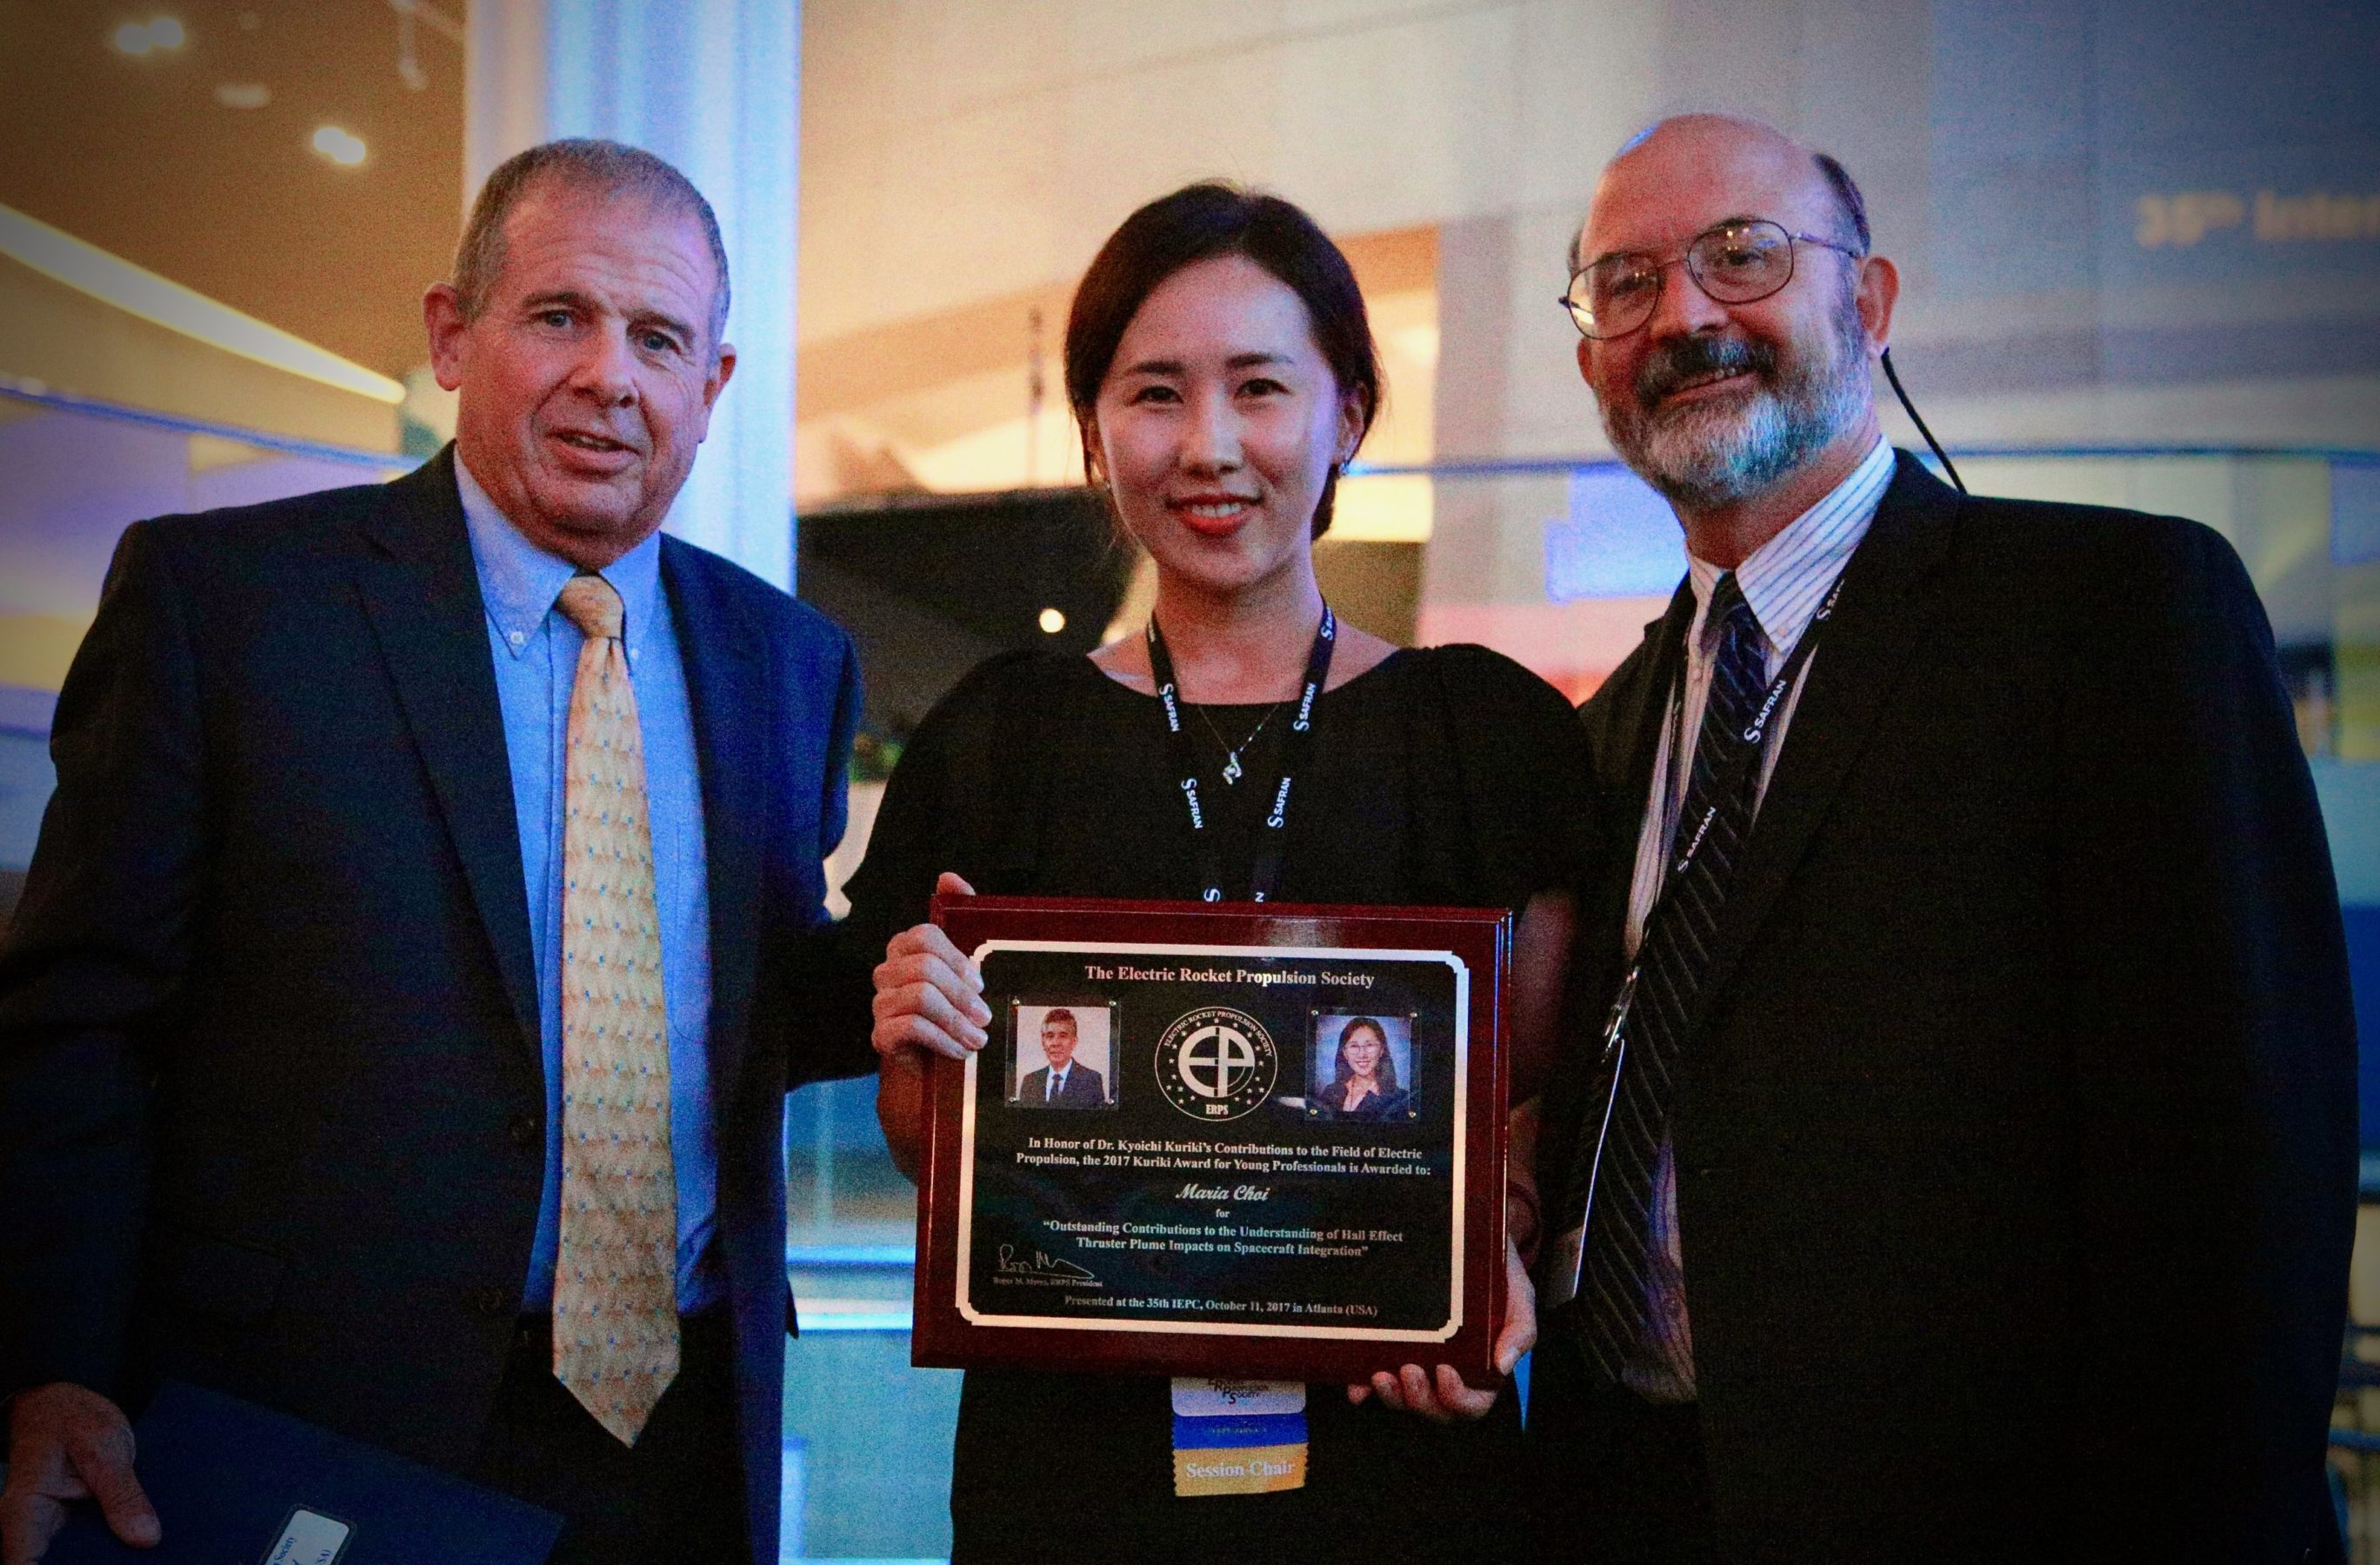 Dr. Maria Choi receiving the Kuriki Young Professionals Award in October 2017